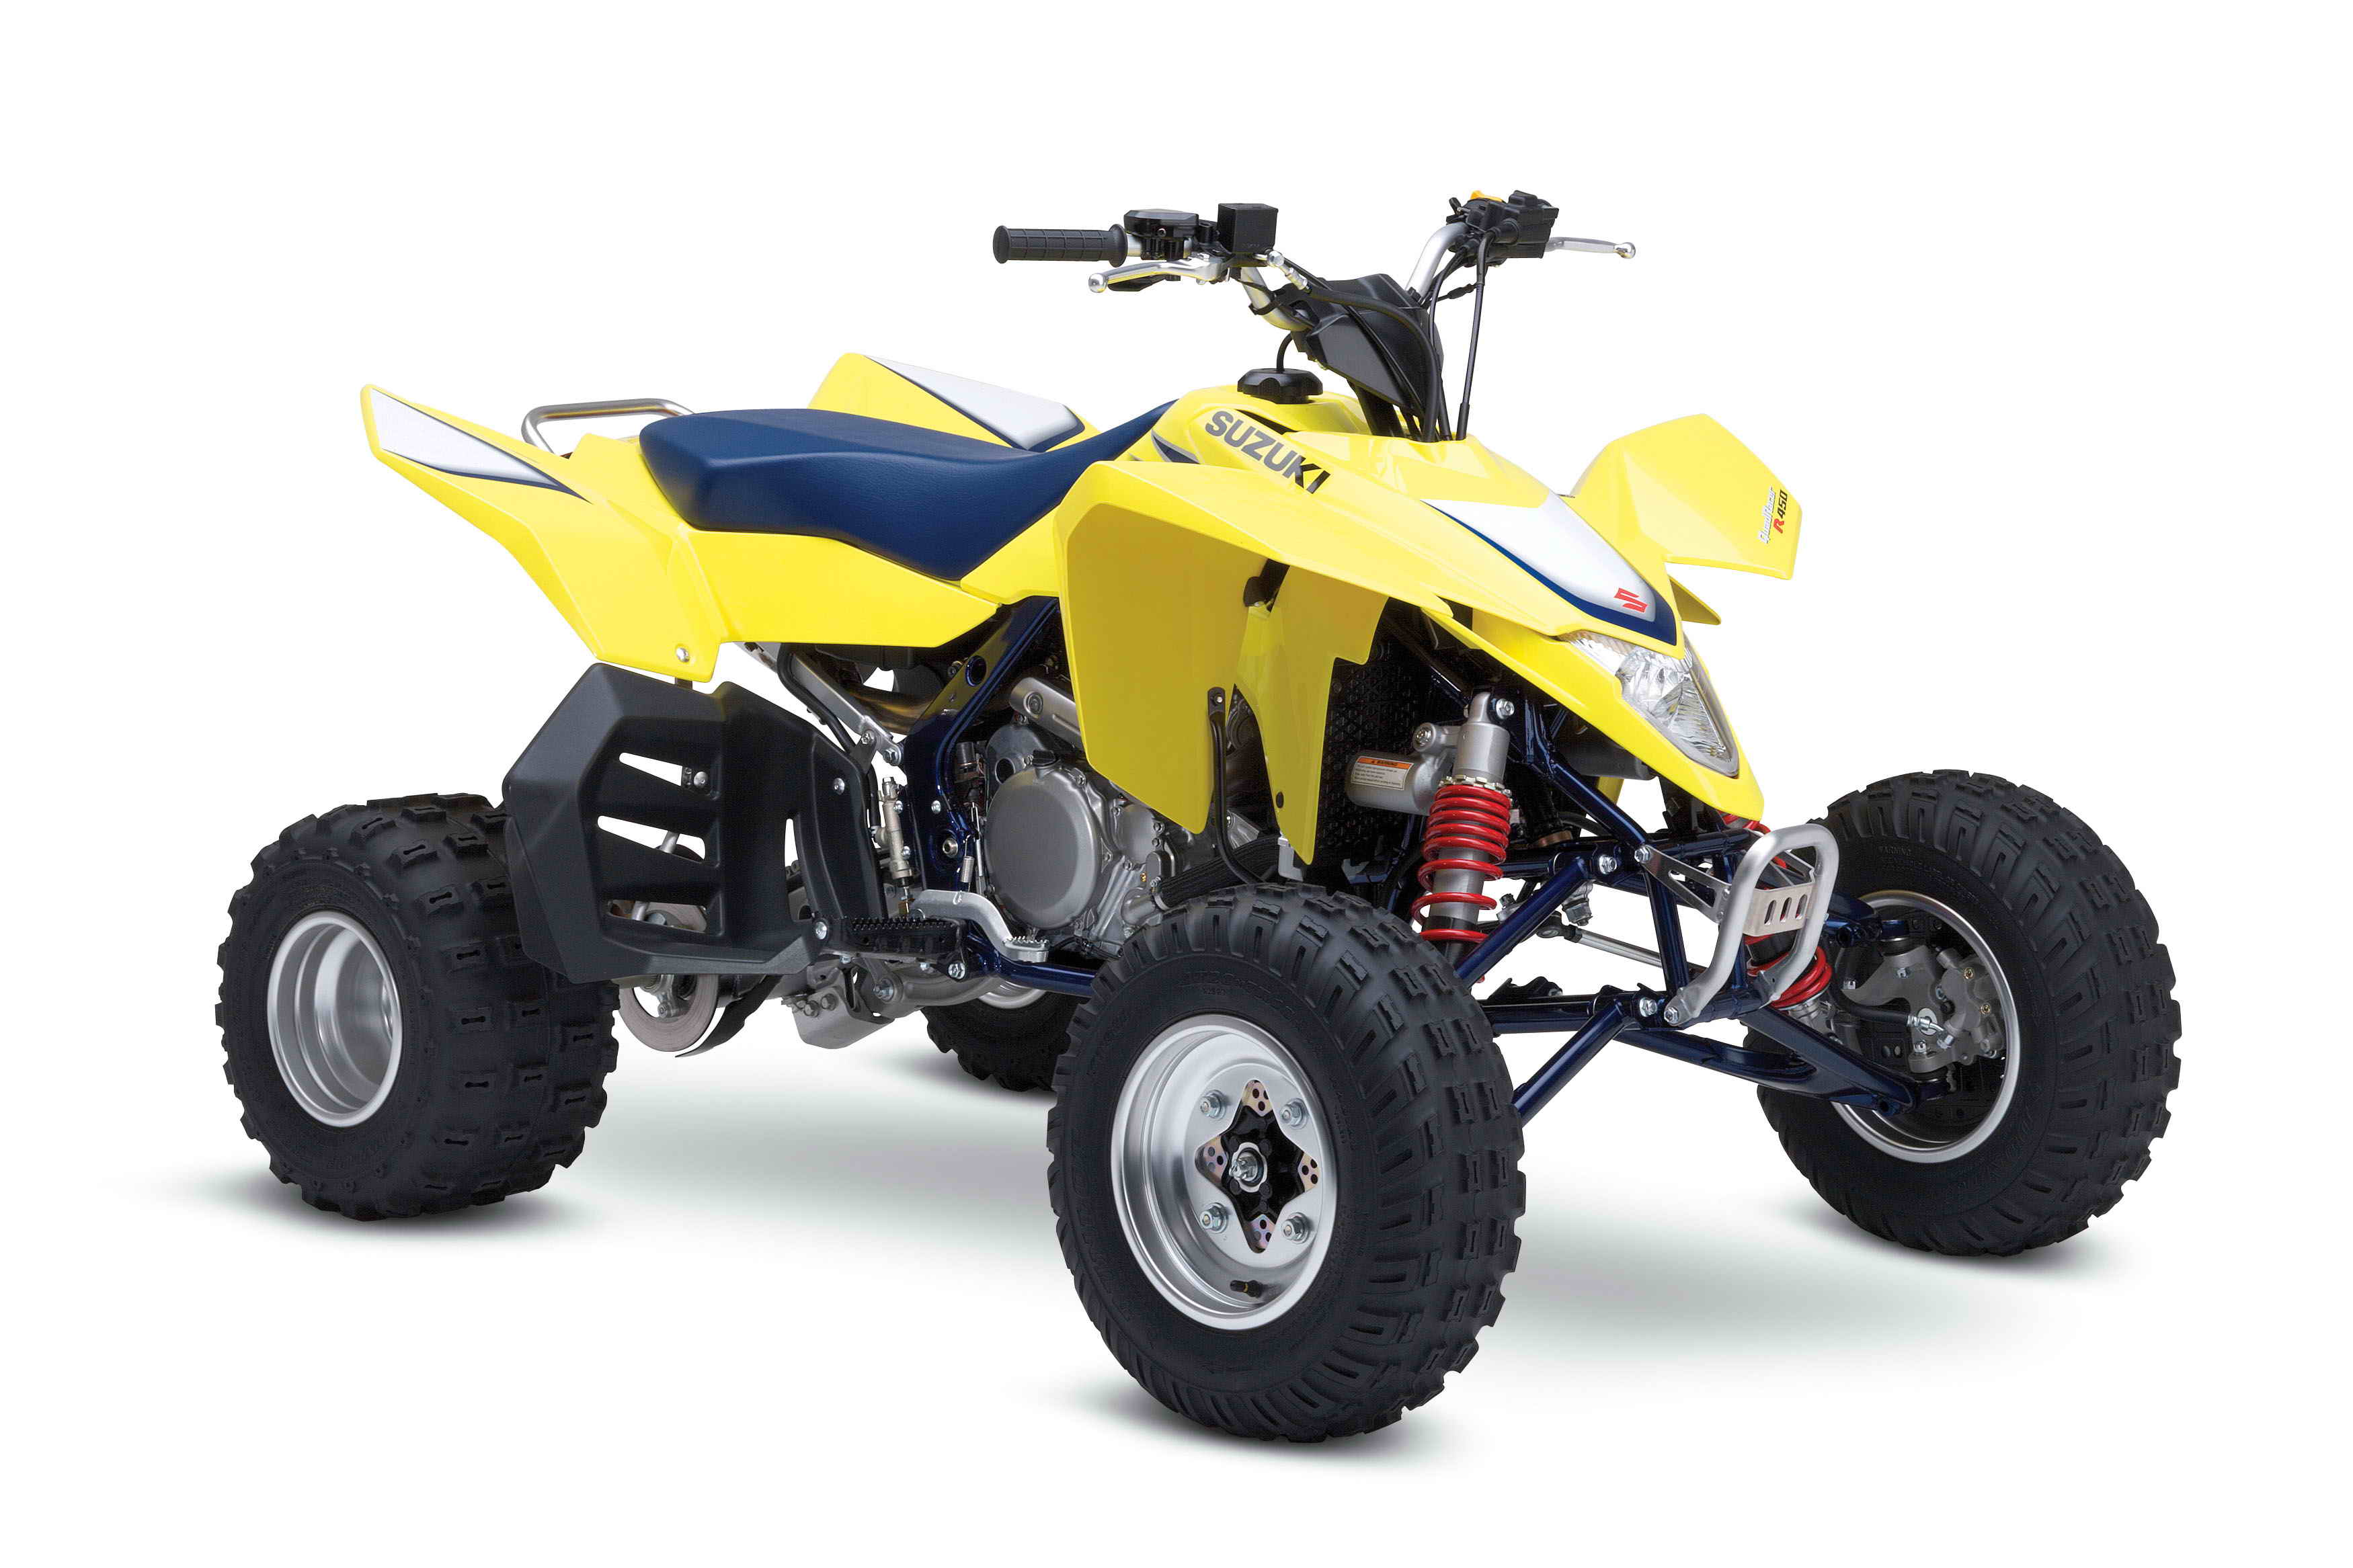 2007 Suzuki QuadRacer R450 | Top Speed